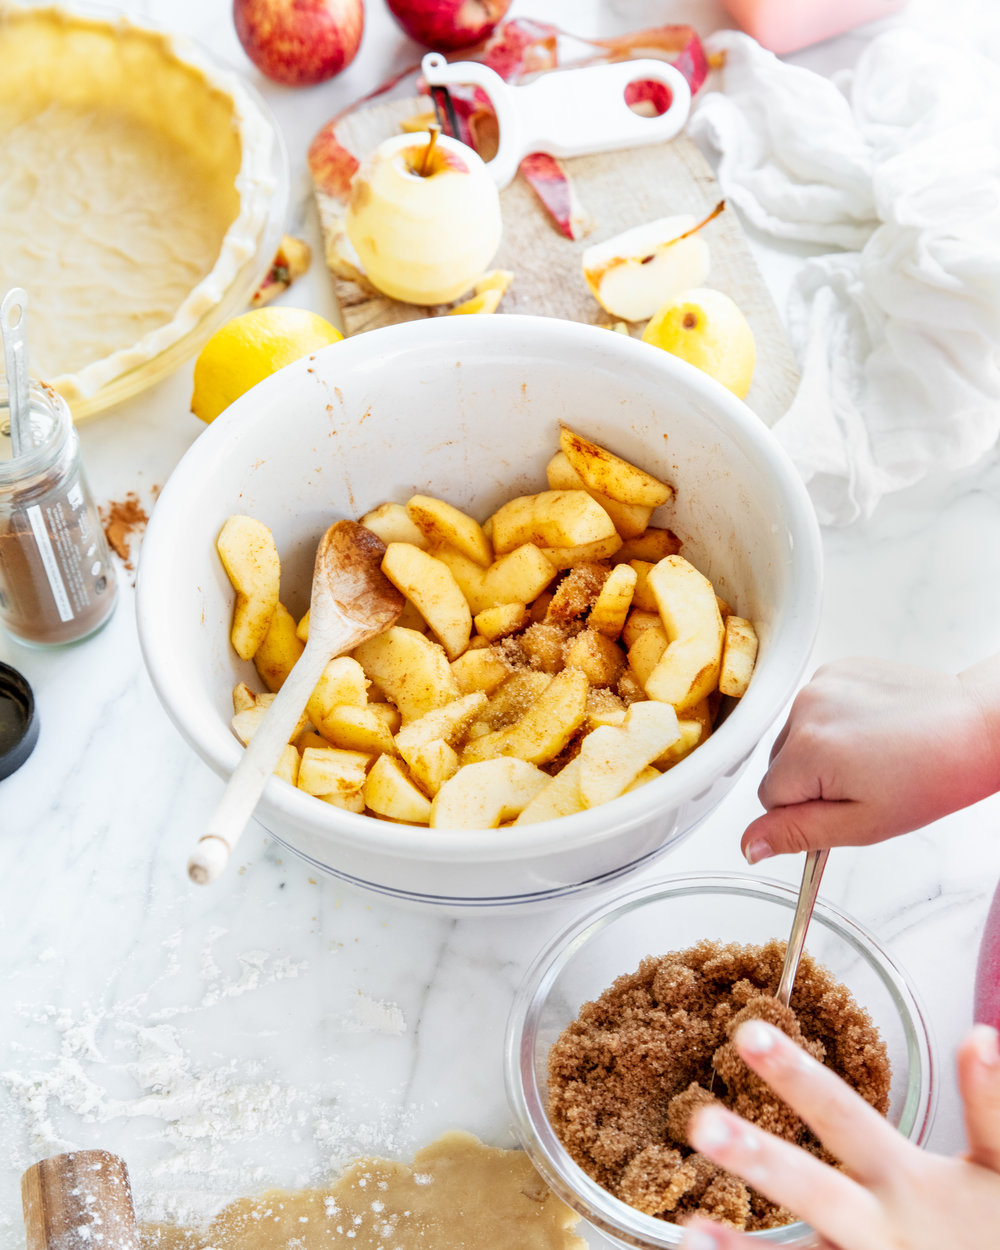 Kids_In_The_Kitchen_Pie_Filling_Good_Eggs